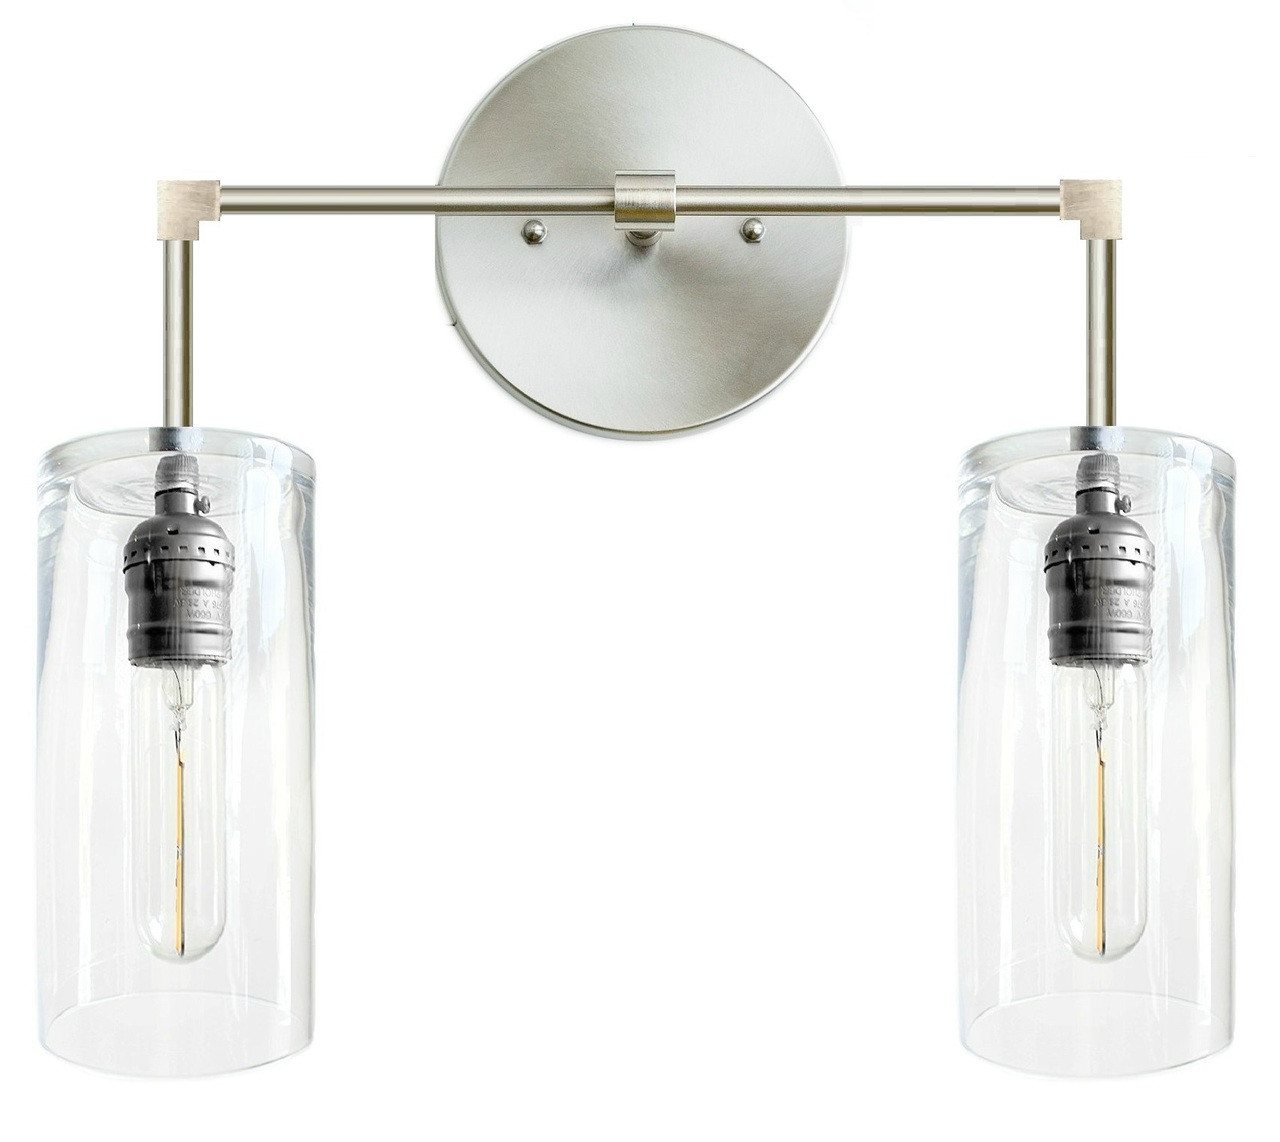 Light fixture for bathroom with glass lamp shades